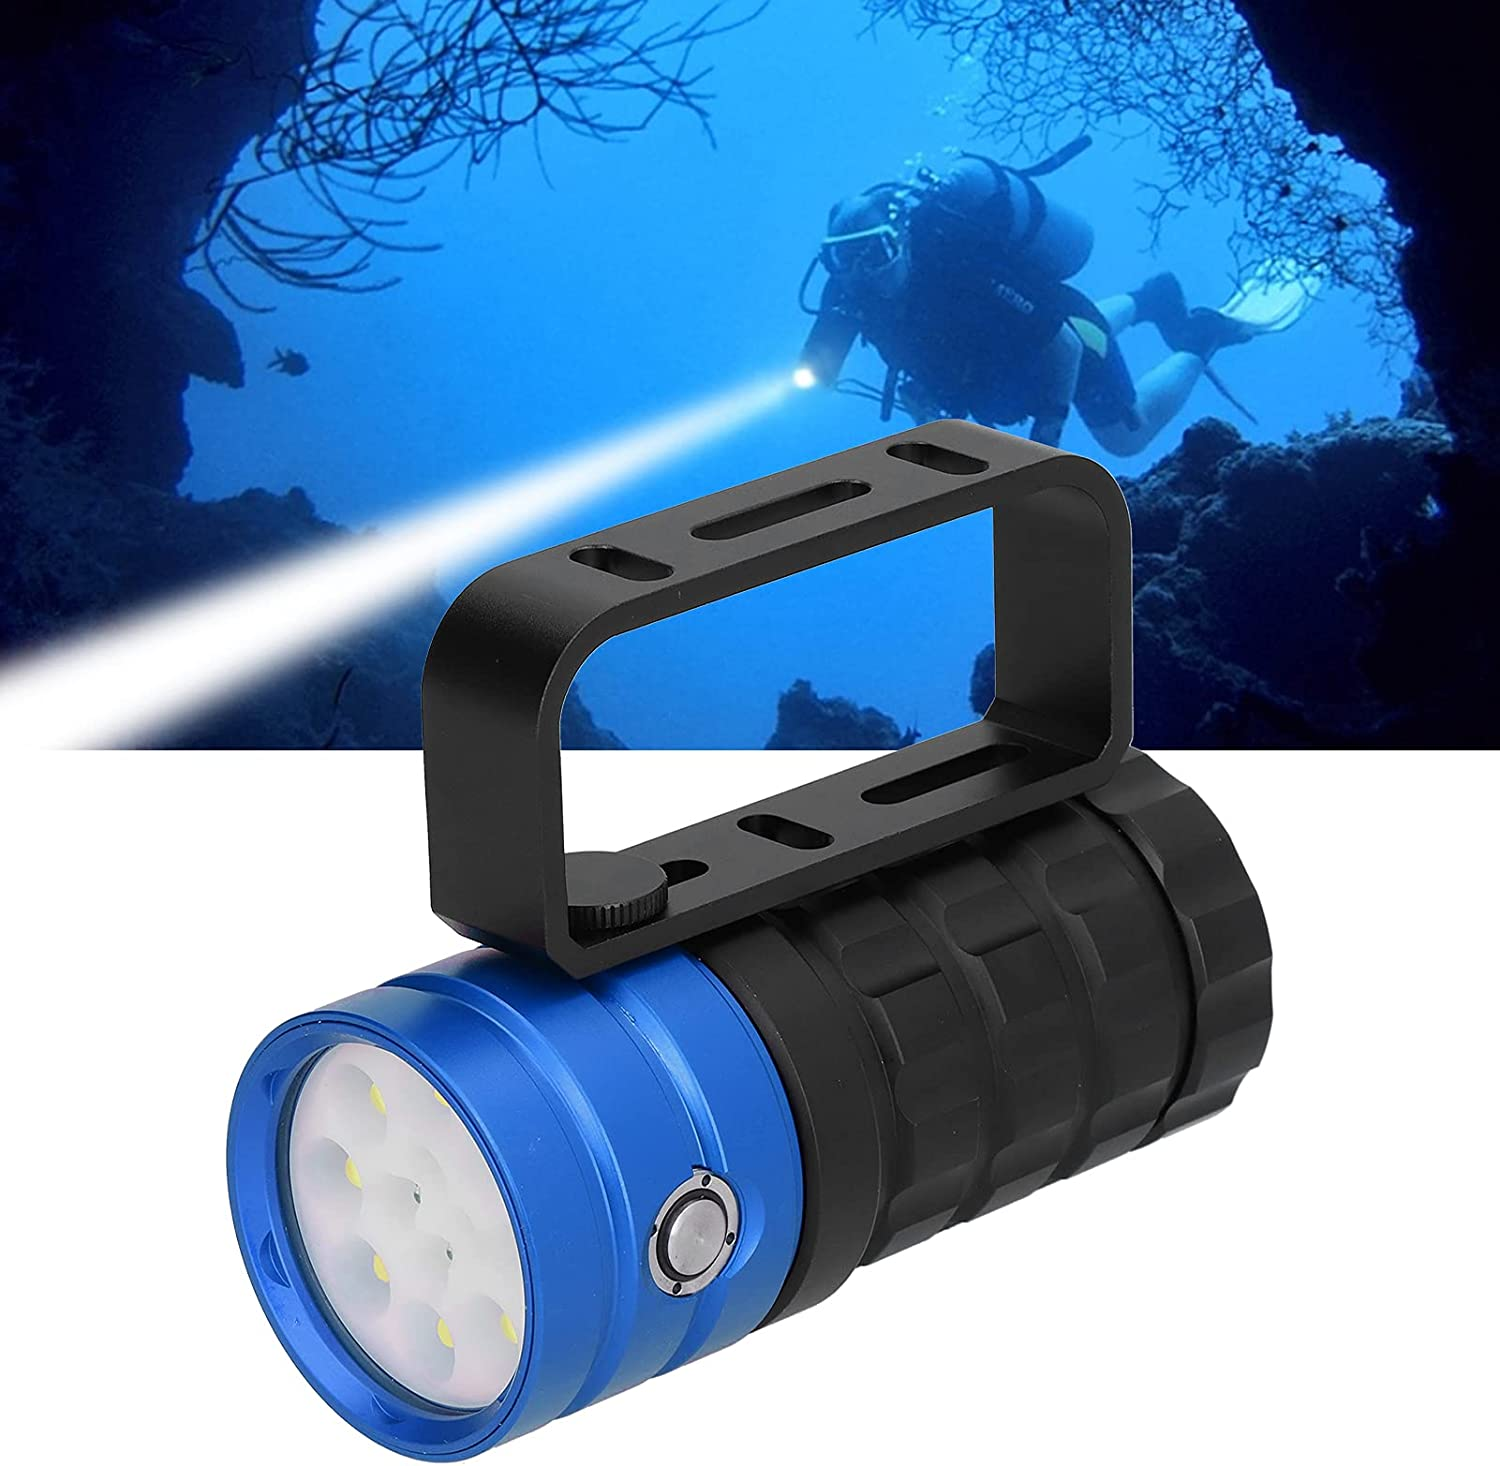 Underwater Max 45% OFF Flashlight Durable ! Super beauty product restock quality top! Diving Torch 10000LM for Un 12LED